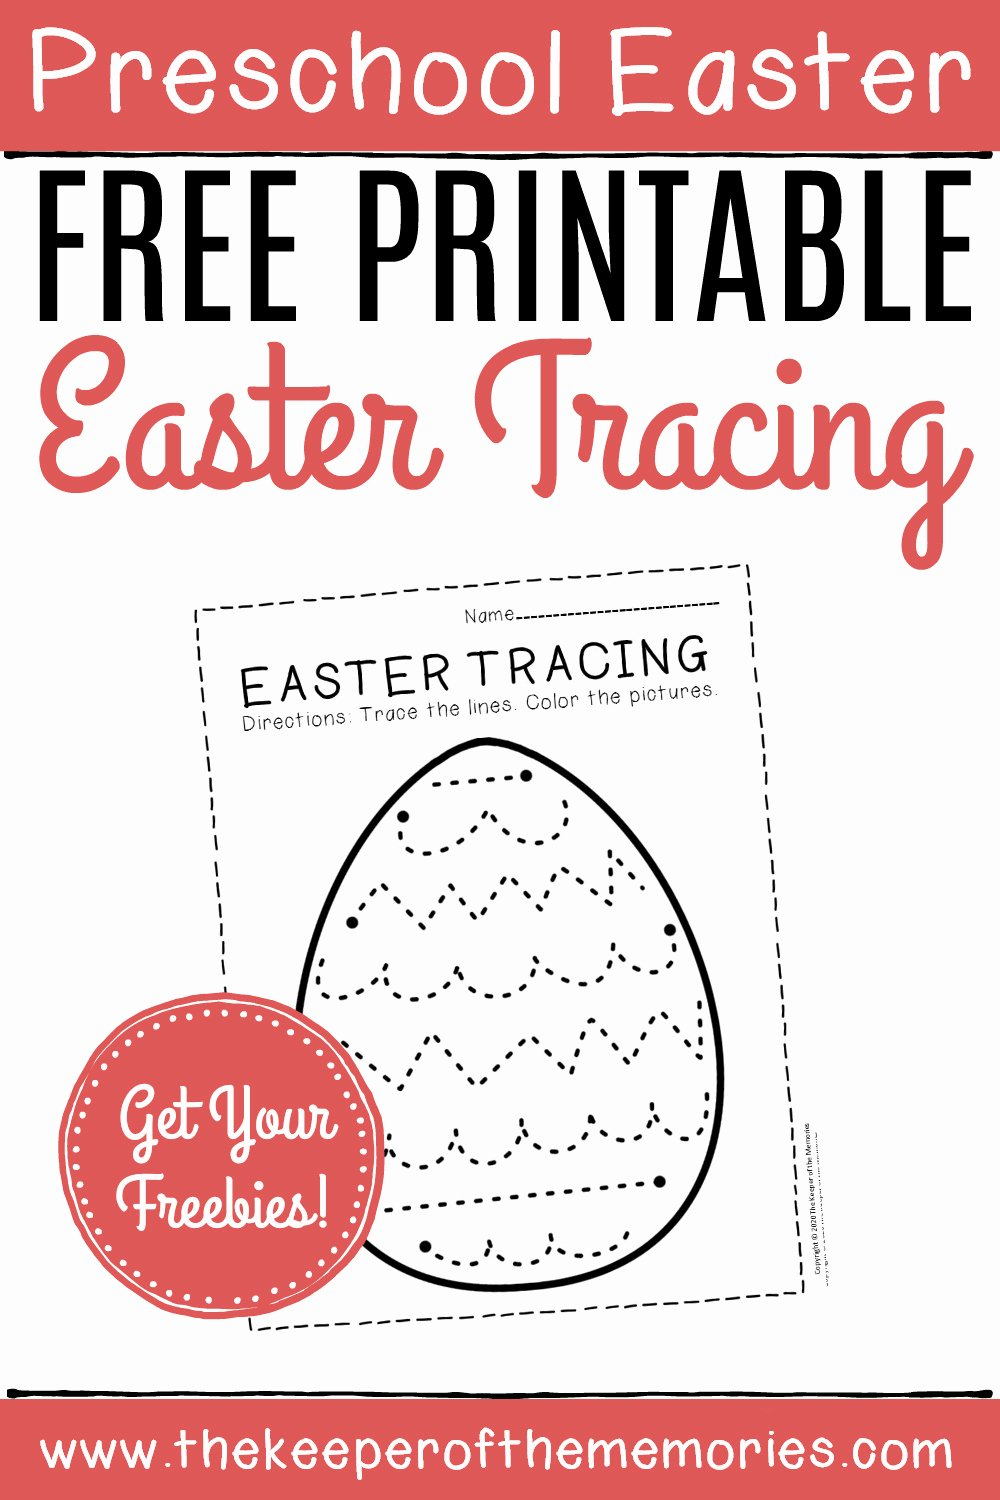 Free Easter Printable Worksheets for Preschoolers top Free Printable Tracing Easter Preschool Worksheets the